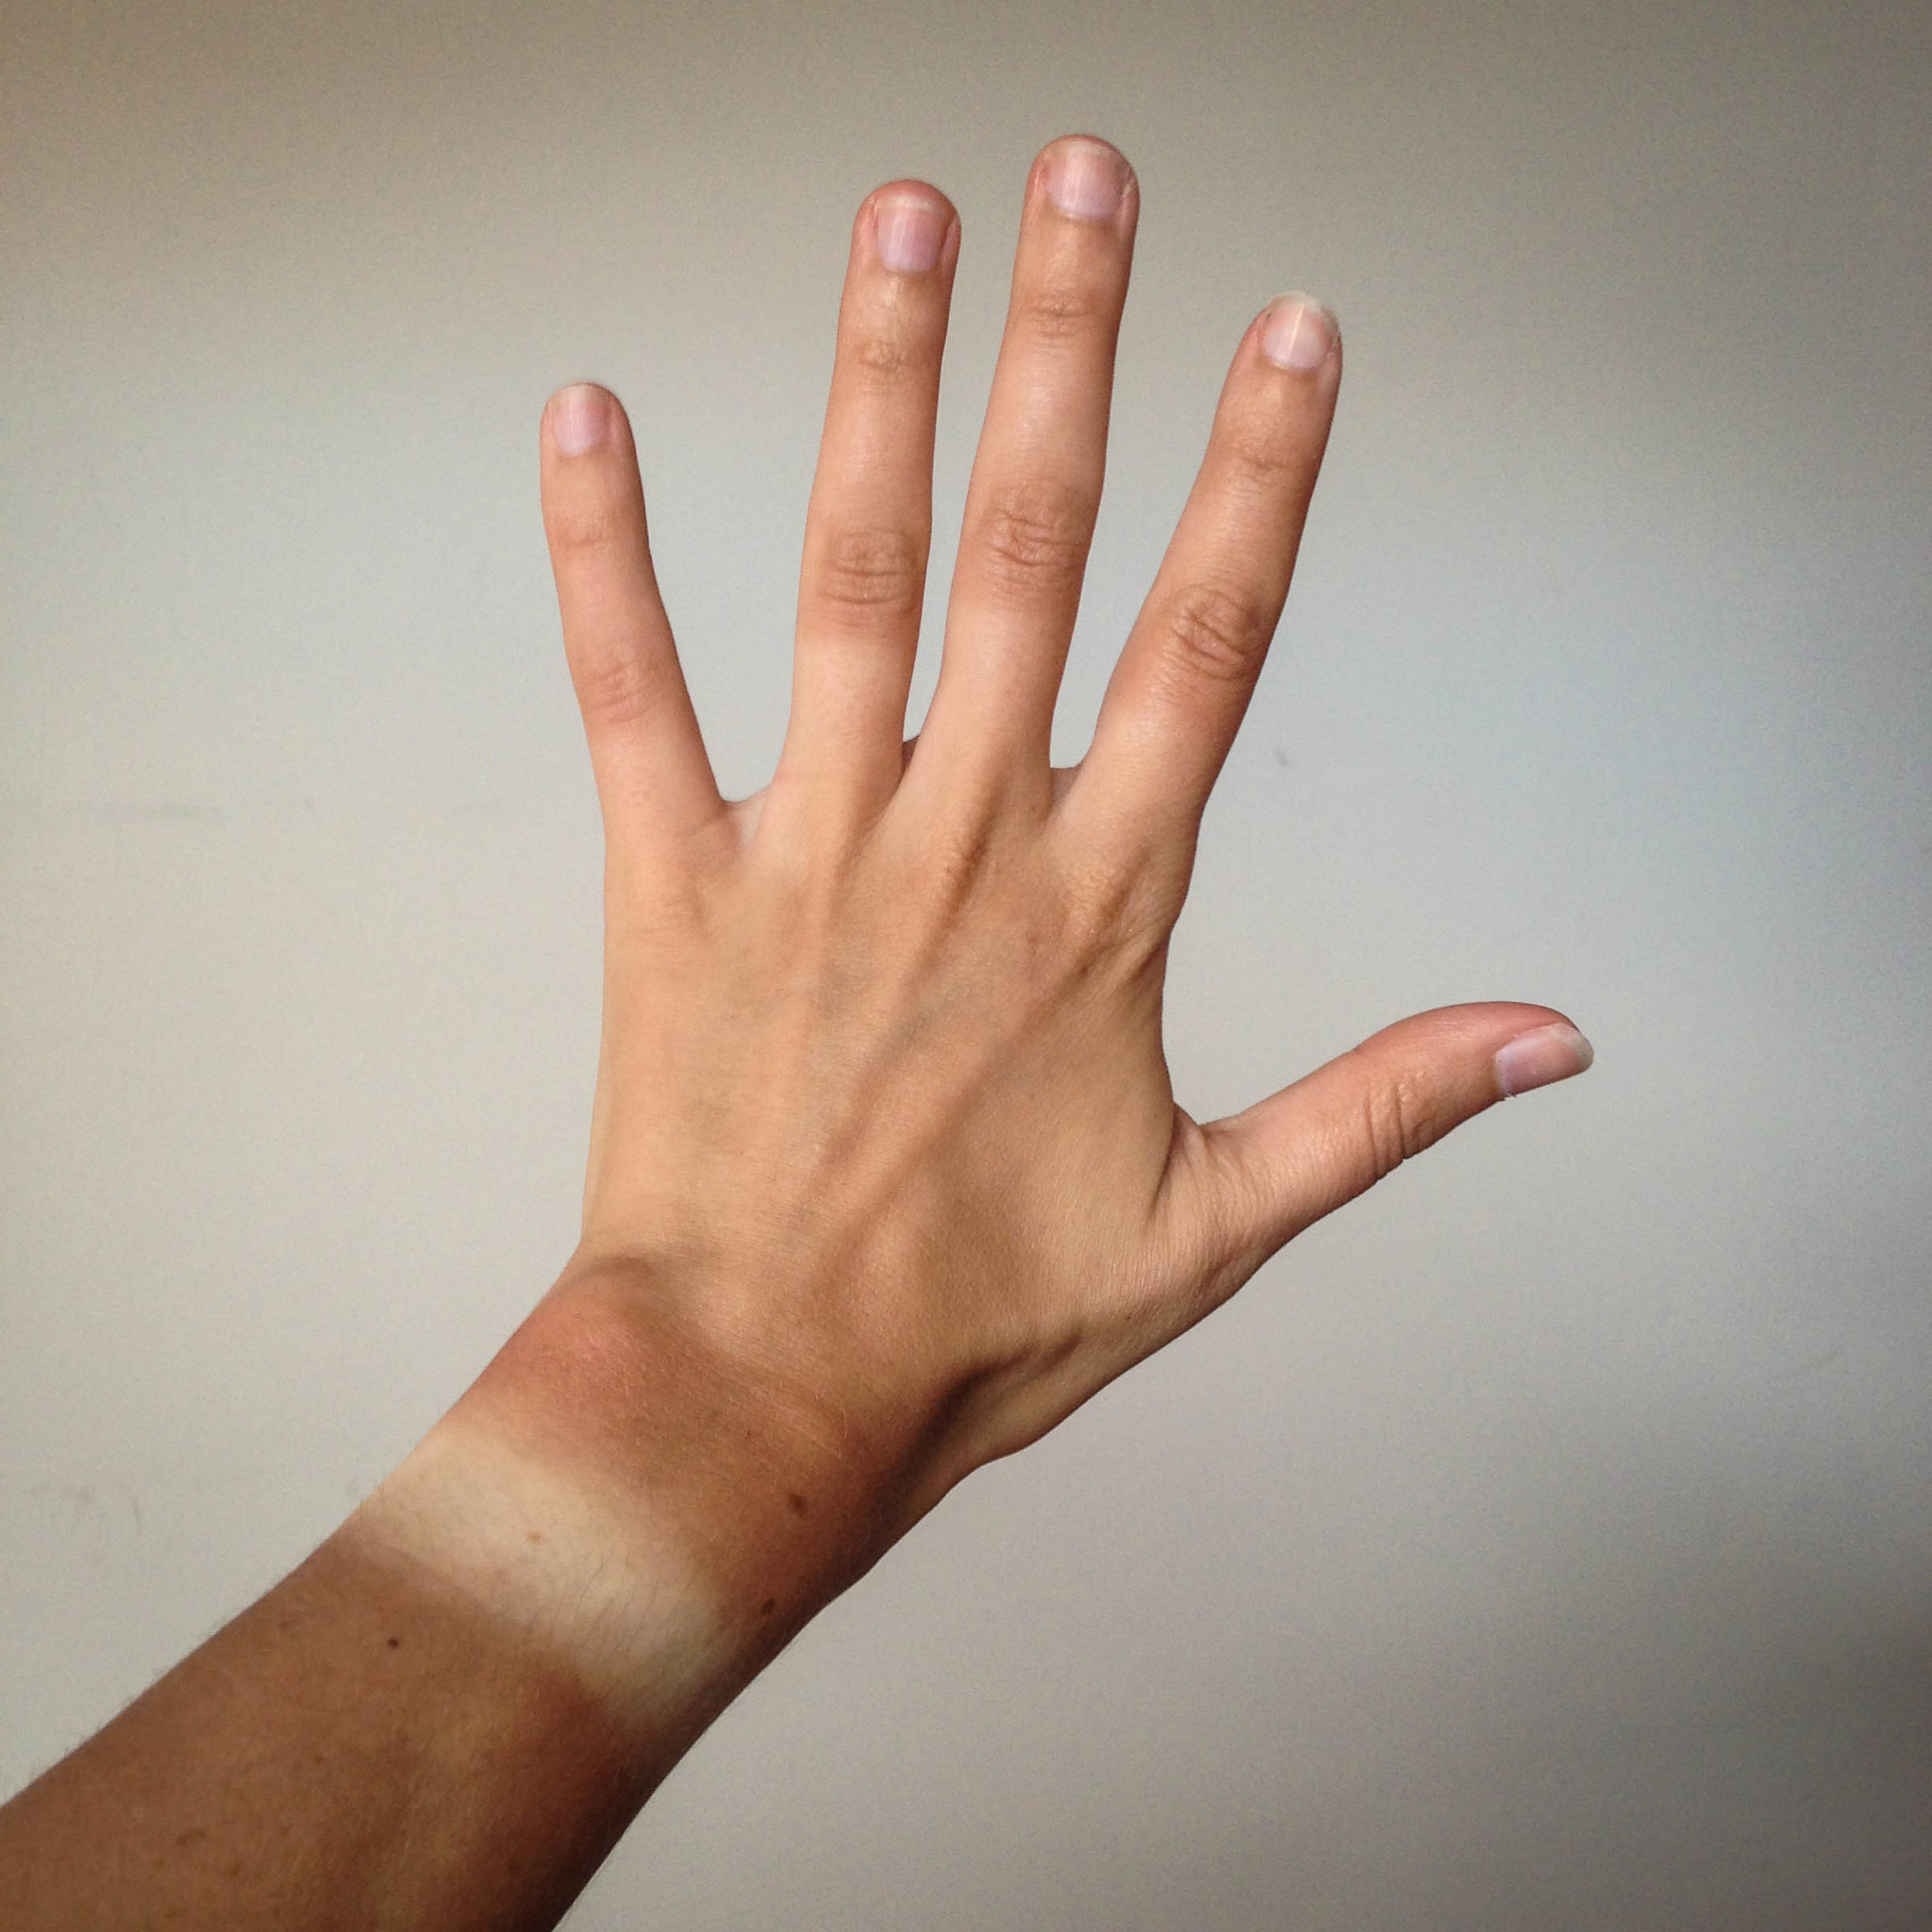 Image shows a hand with a tan line where a watch had been worn.